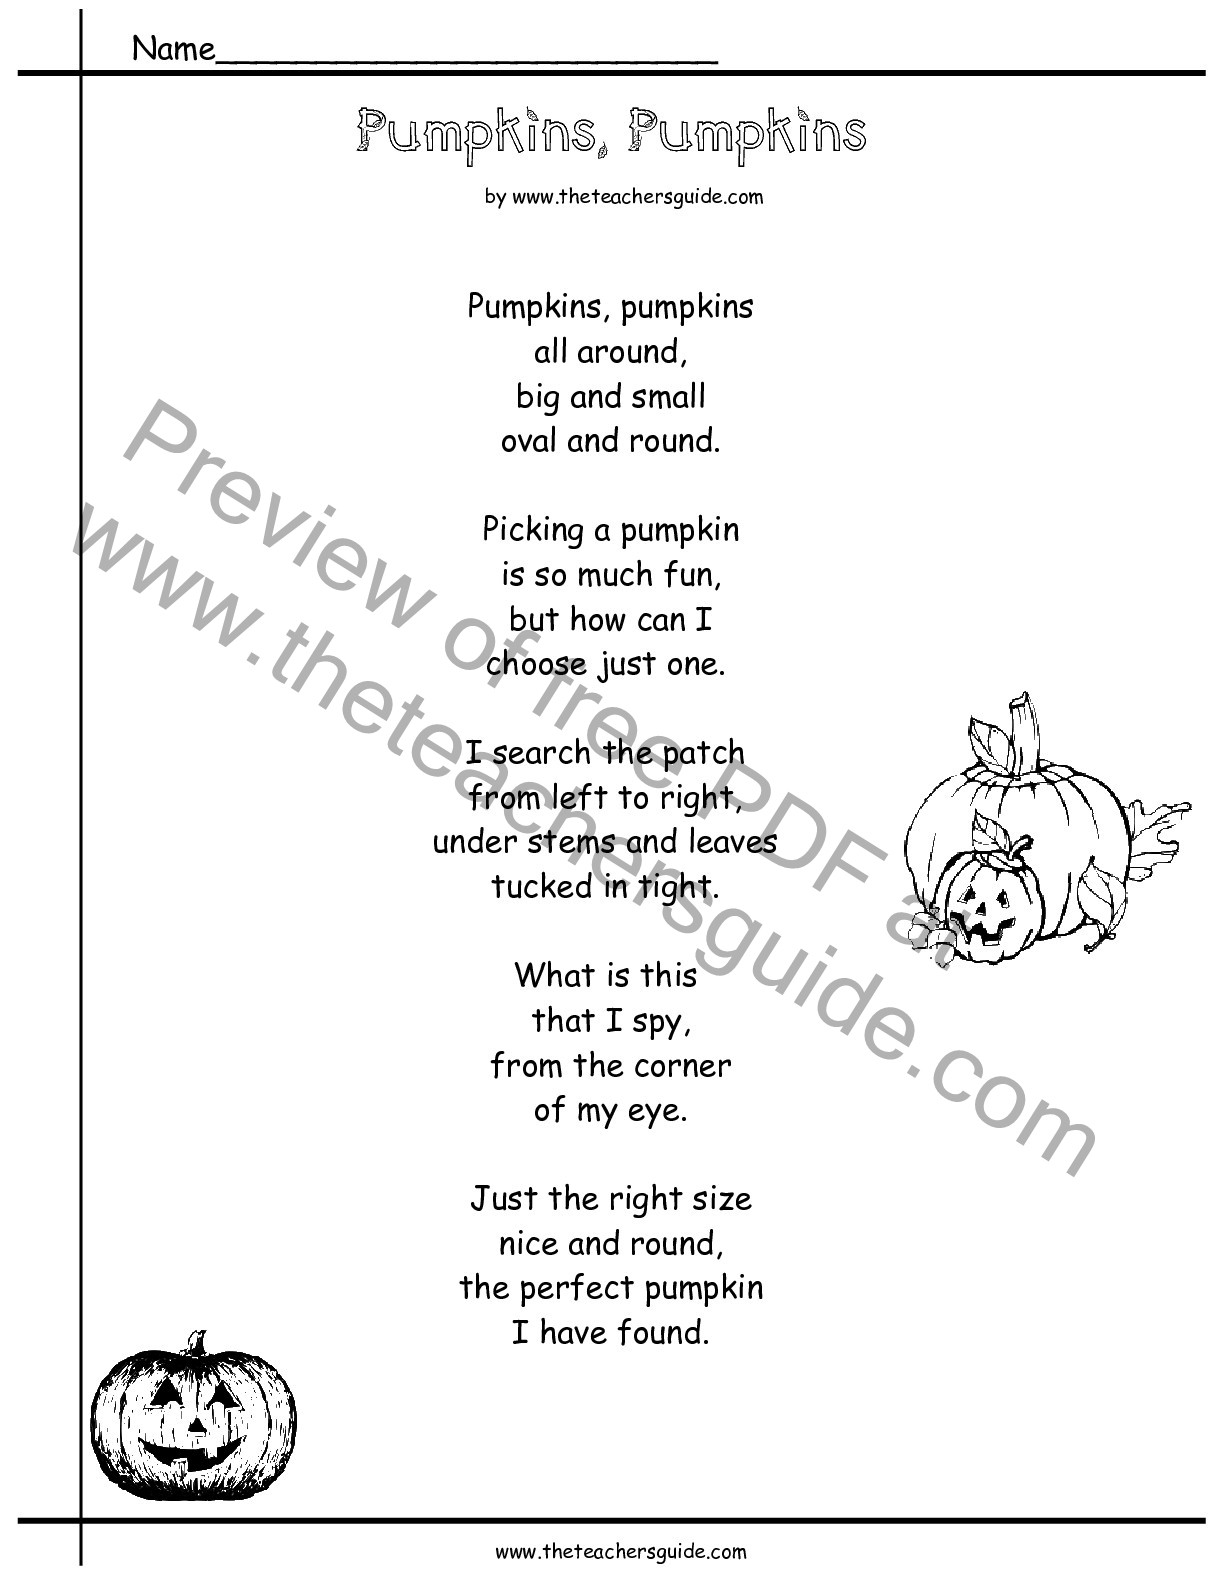 Saxon Math 3rd Grade Worksheets Elements Poetry for 3rd Grade theme Worksheets Fun